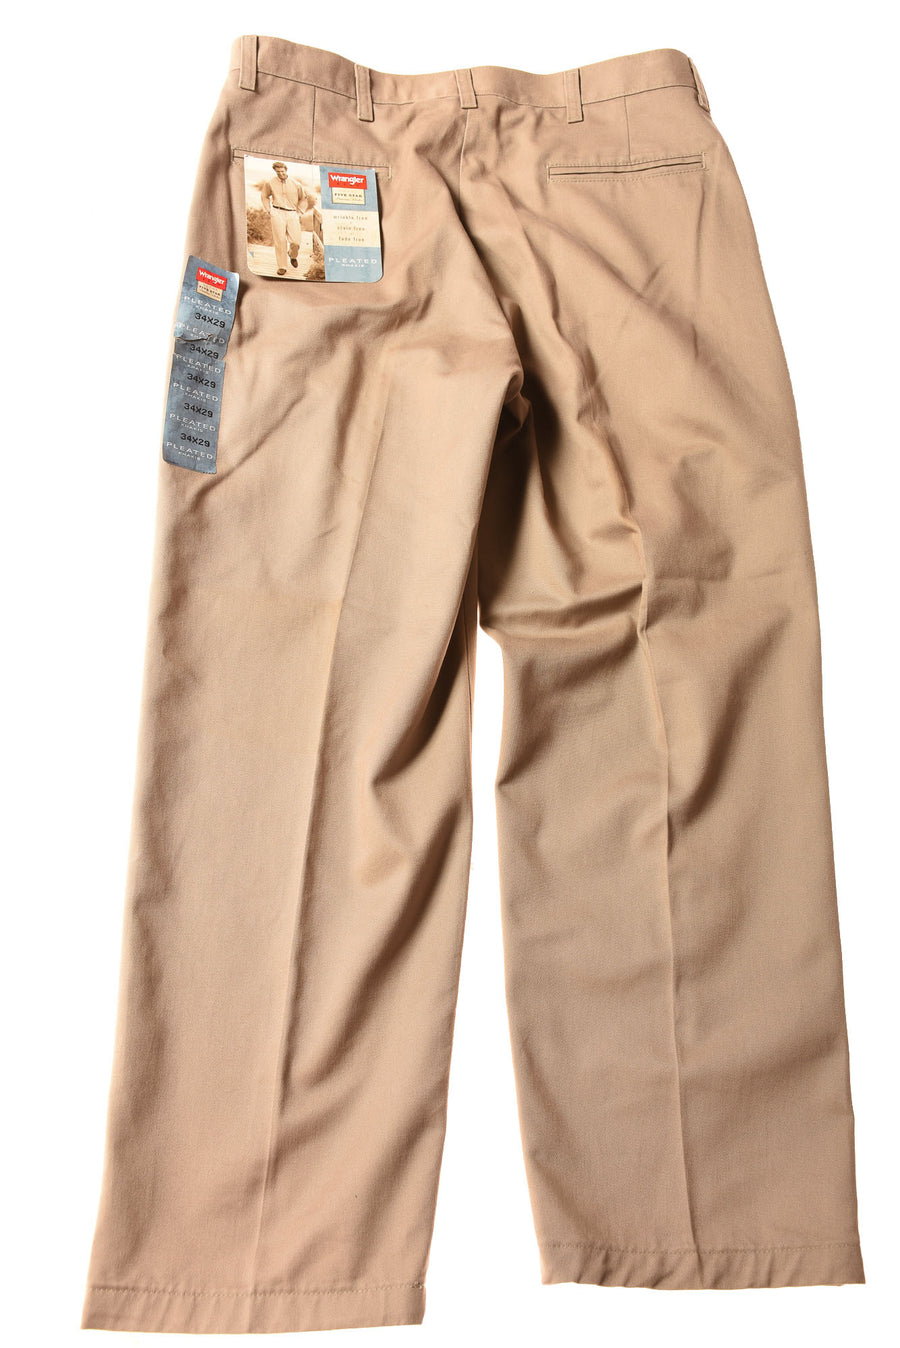 NEW Wrangler Men's Slacks 34x29 Brown